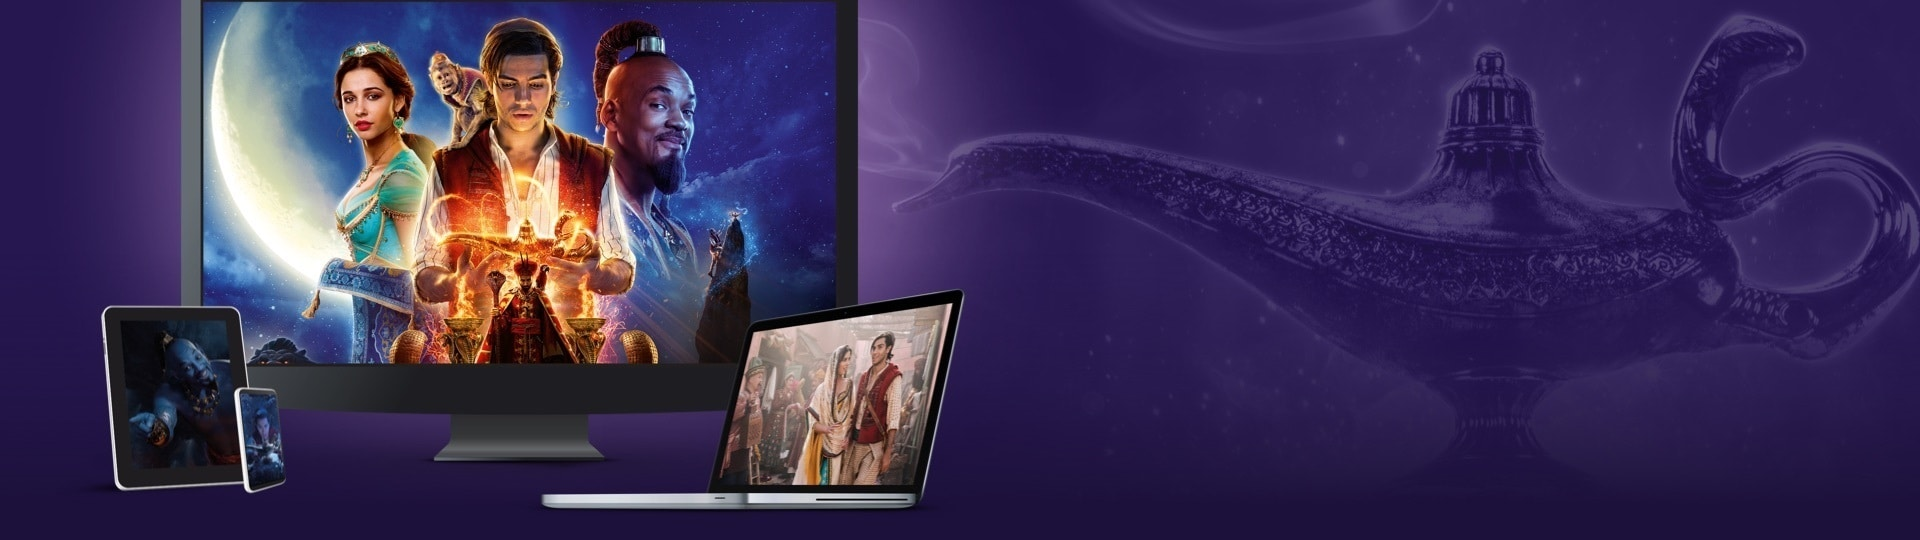 Aladdin | Disponible para descargar y disfrutar